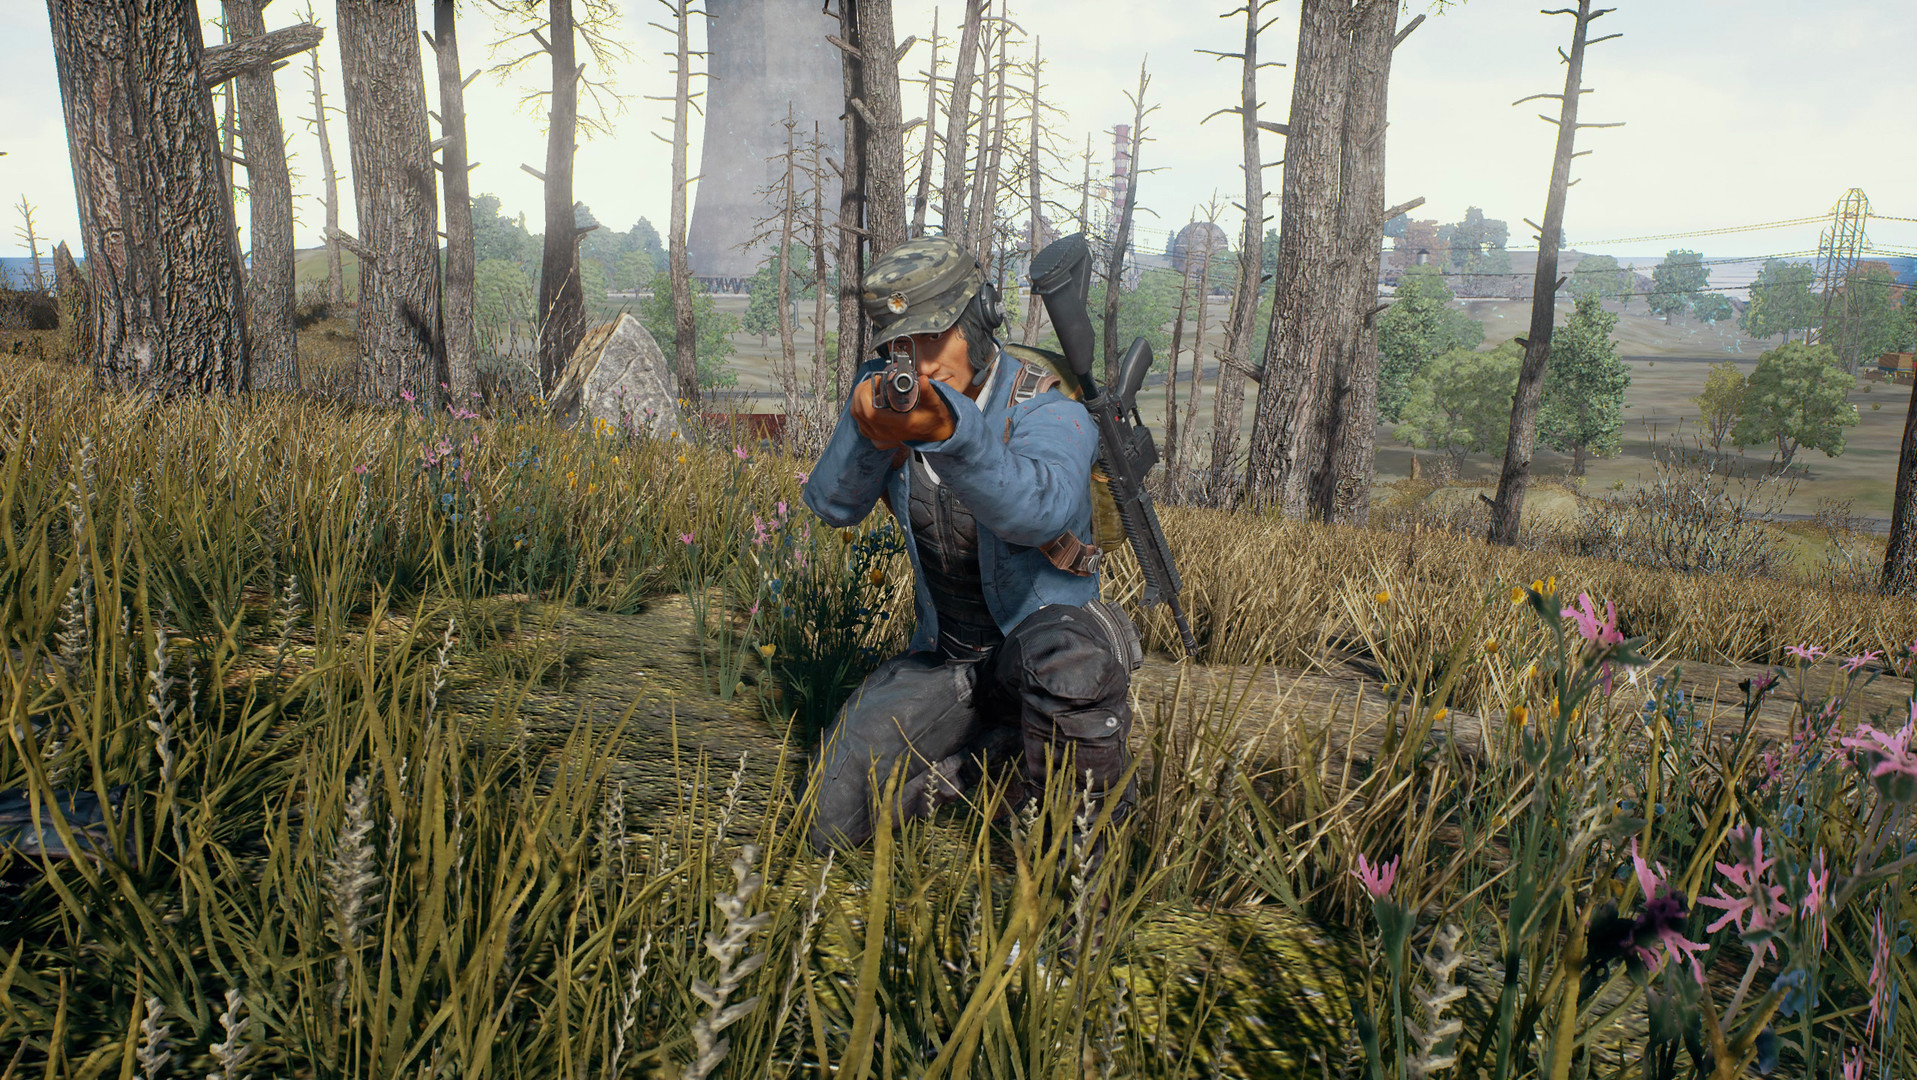 PlayerUnknown's Battlegrounds está rodando entre 30 e 40 fps em protótipo do Xbox One X